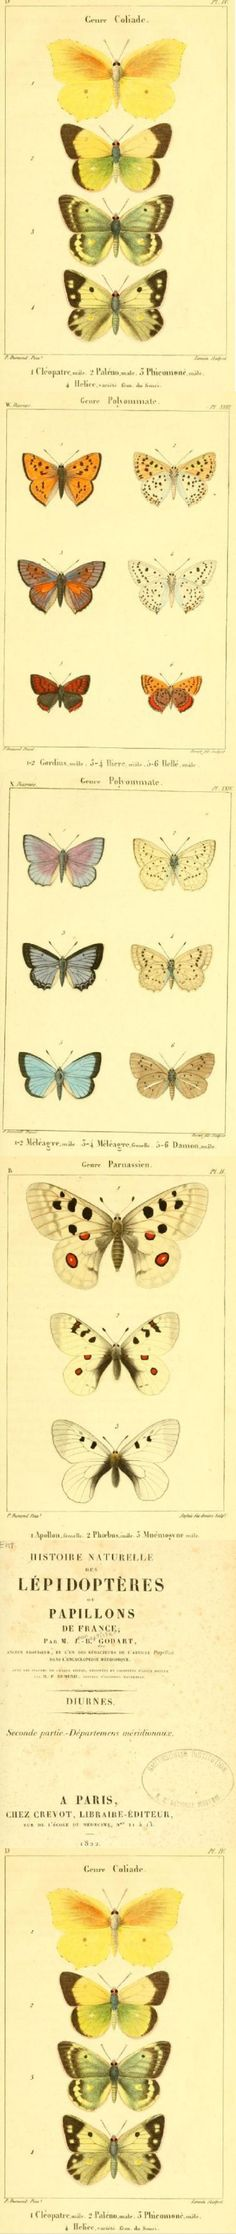 Great  butterfly inspirations in this french book from 1822.